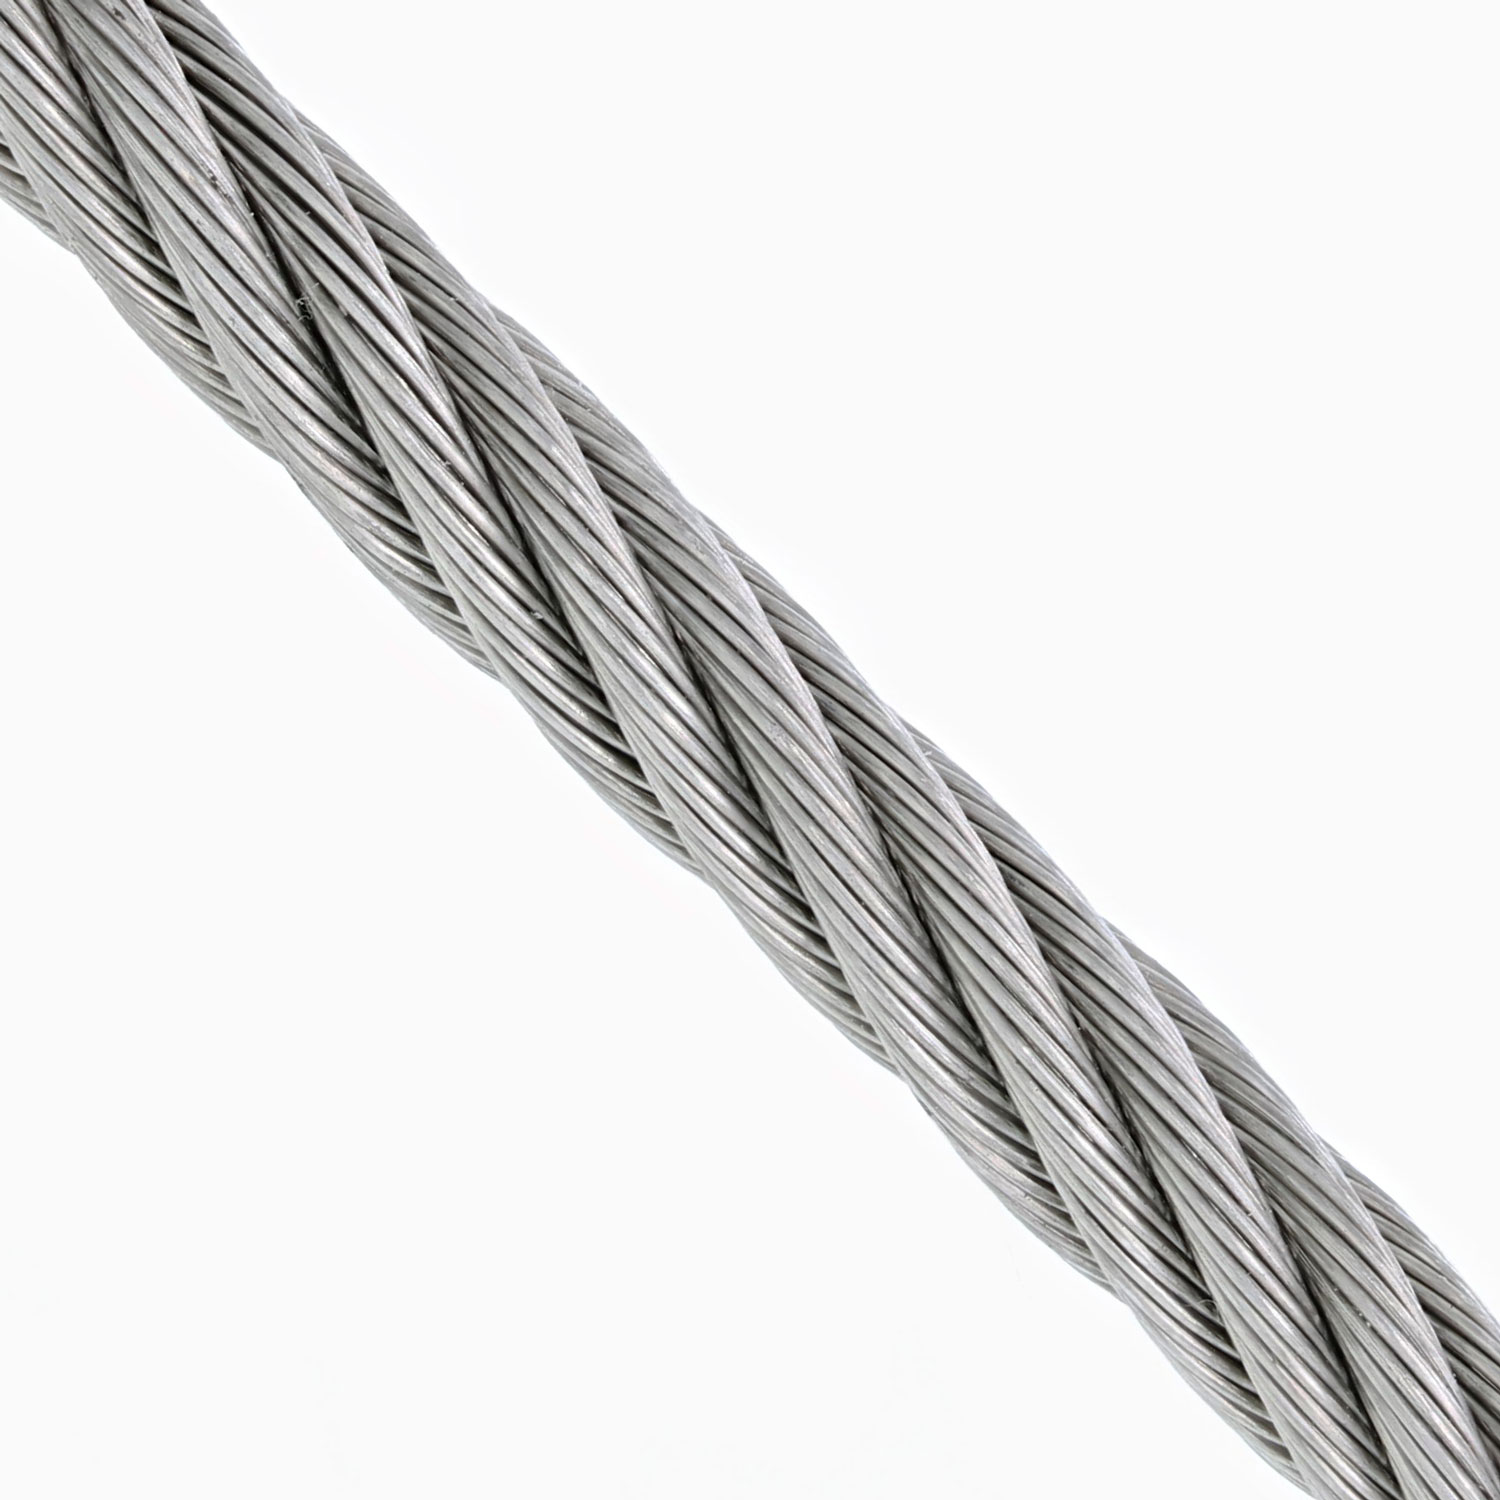 3⁄8 inch, 7 x 19 Grade 304 Stainless Steel Cable